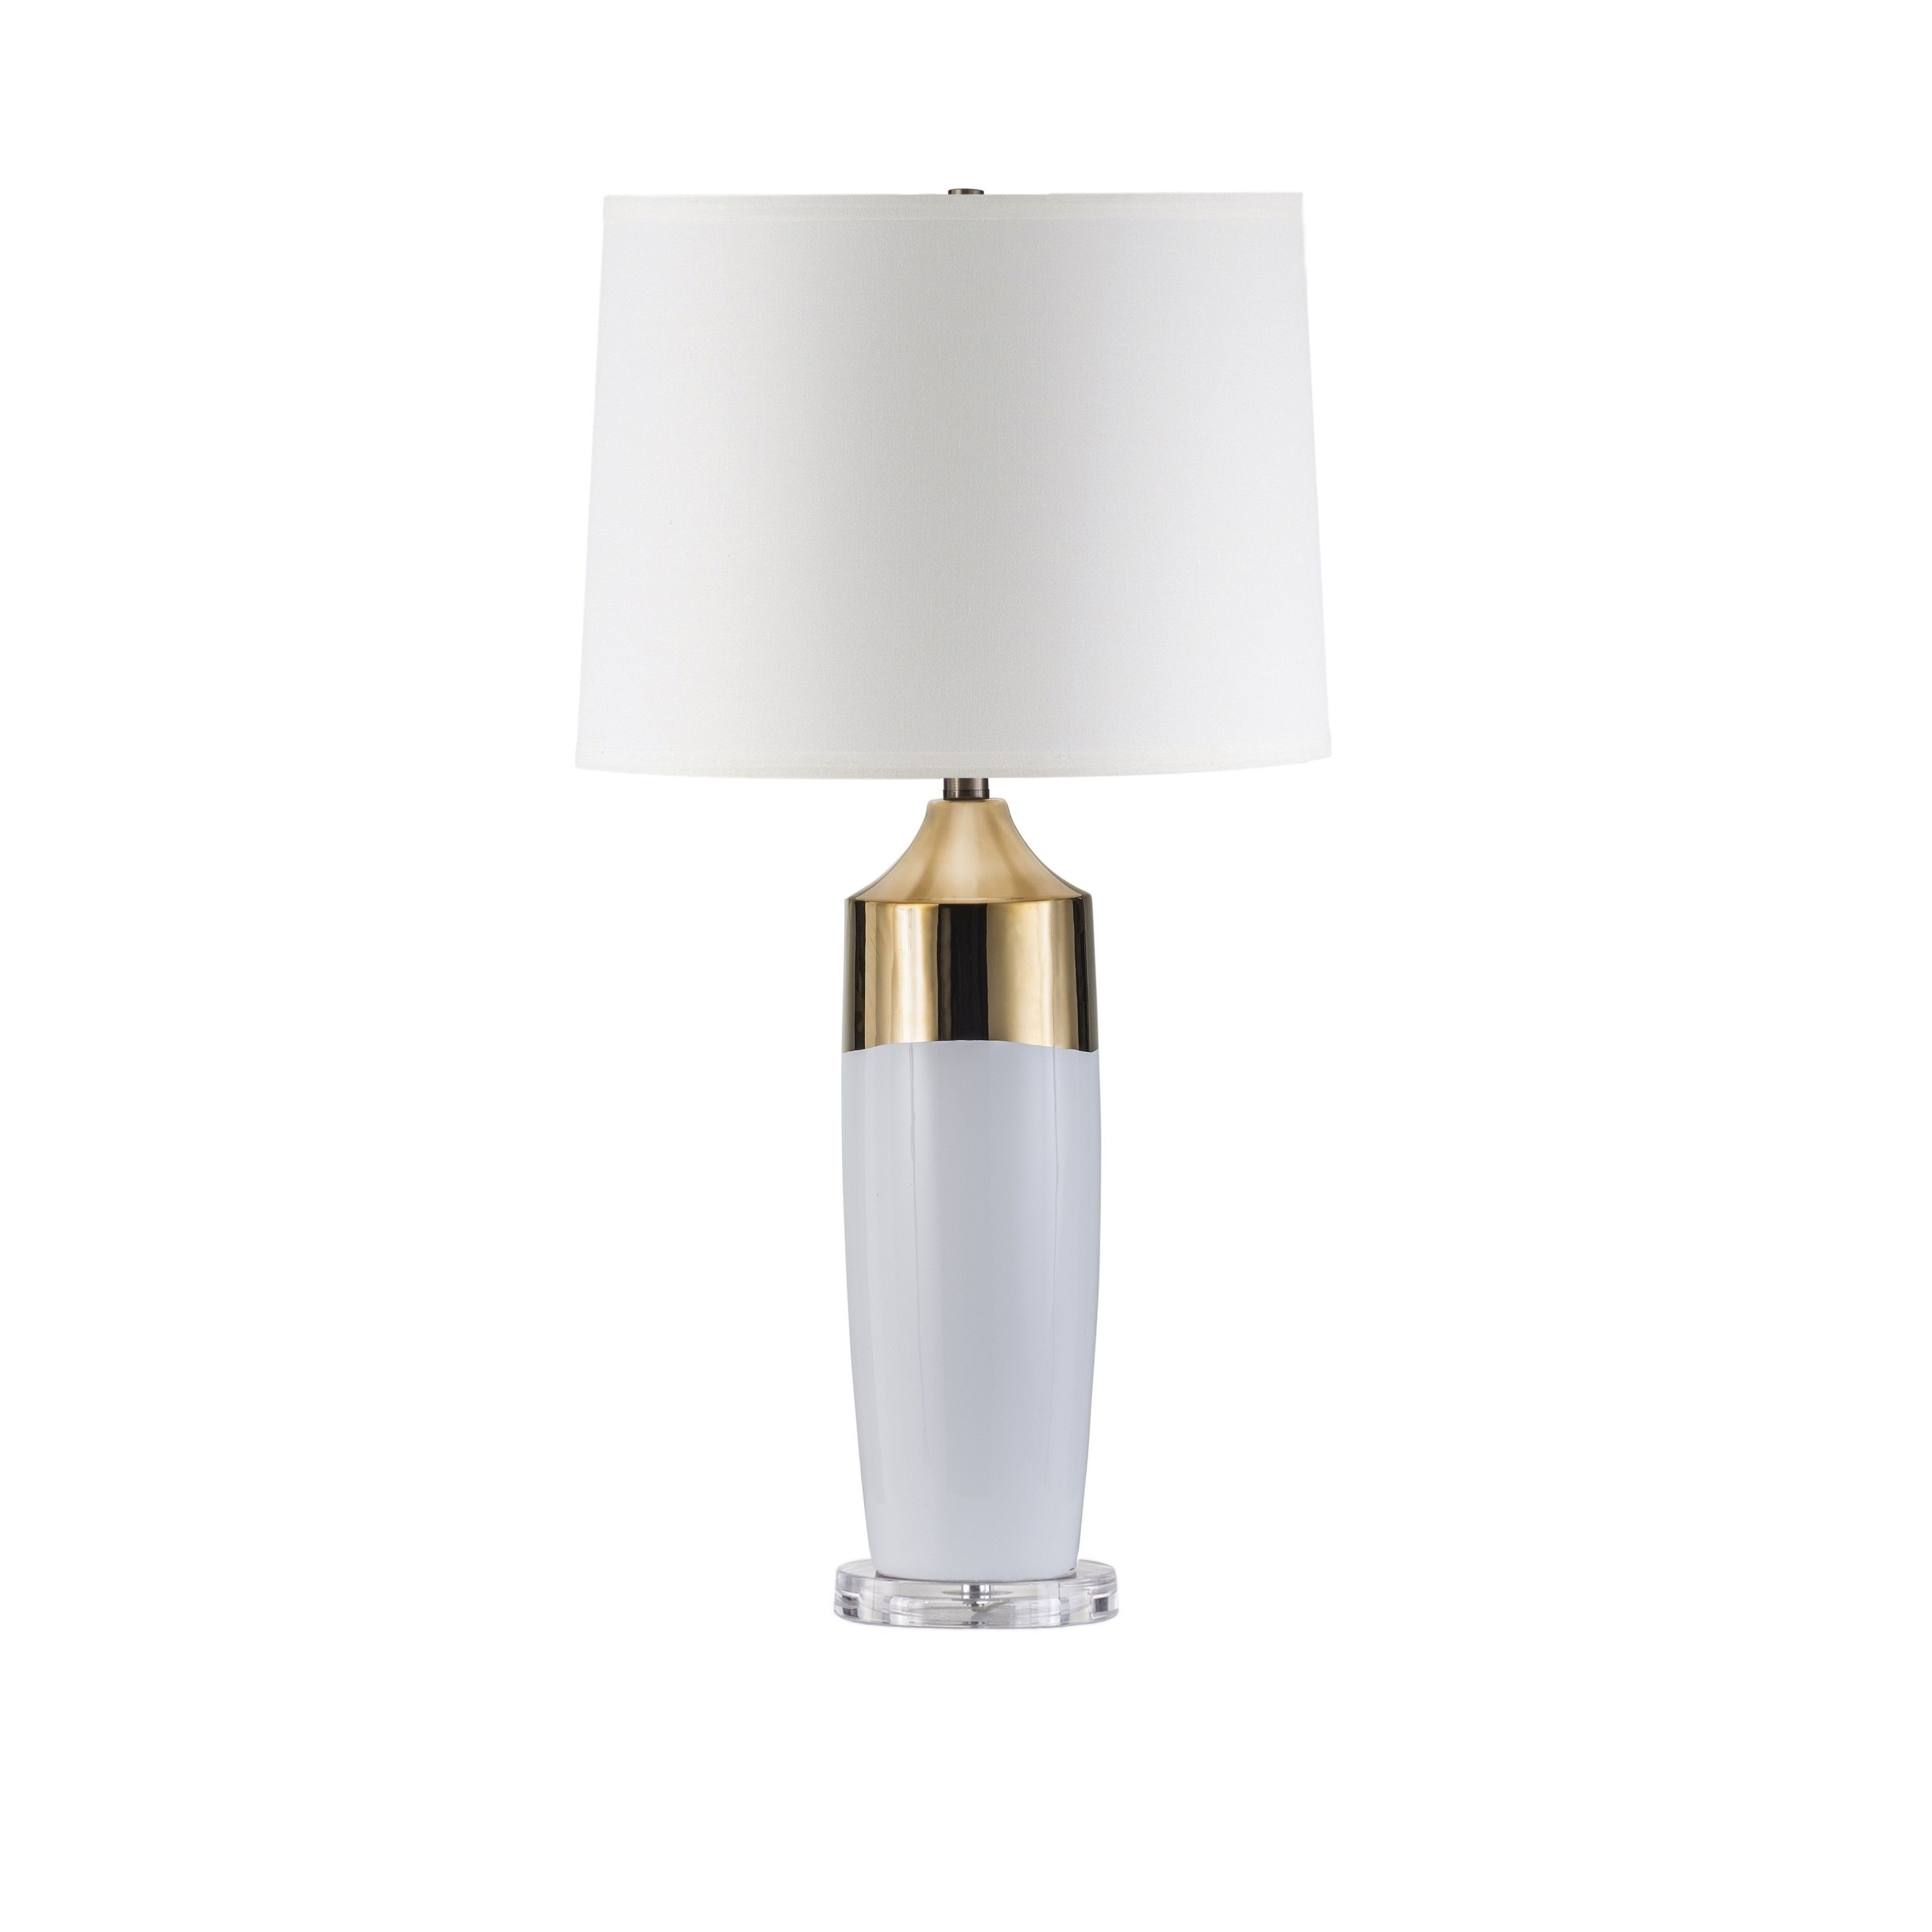 hang shade century sleek over lamp and that touch glass square chrome reading light couch lamps floor oak elena crystal modern with mid led white contemporary table gold online